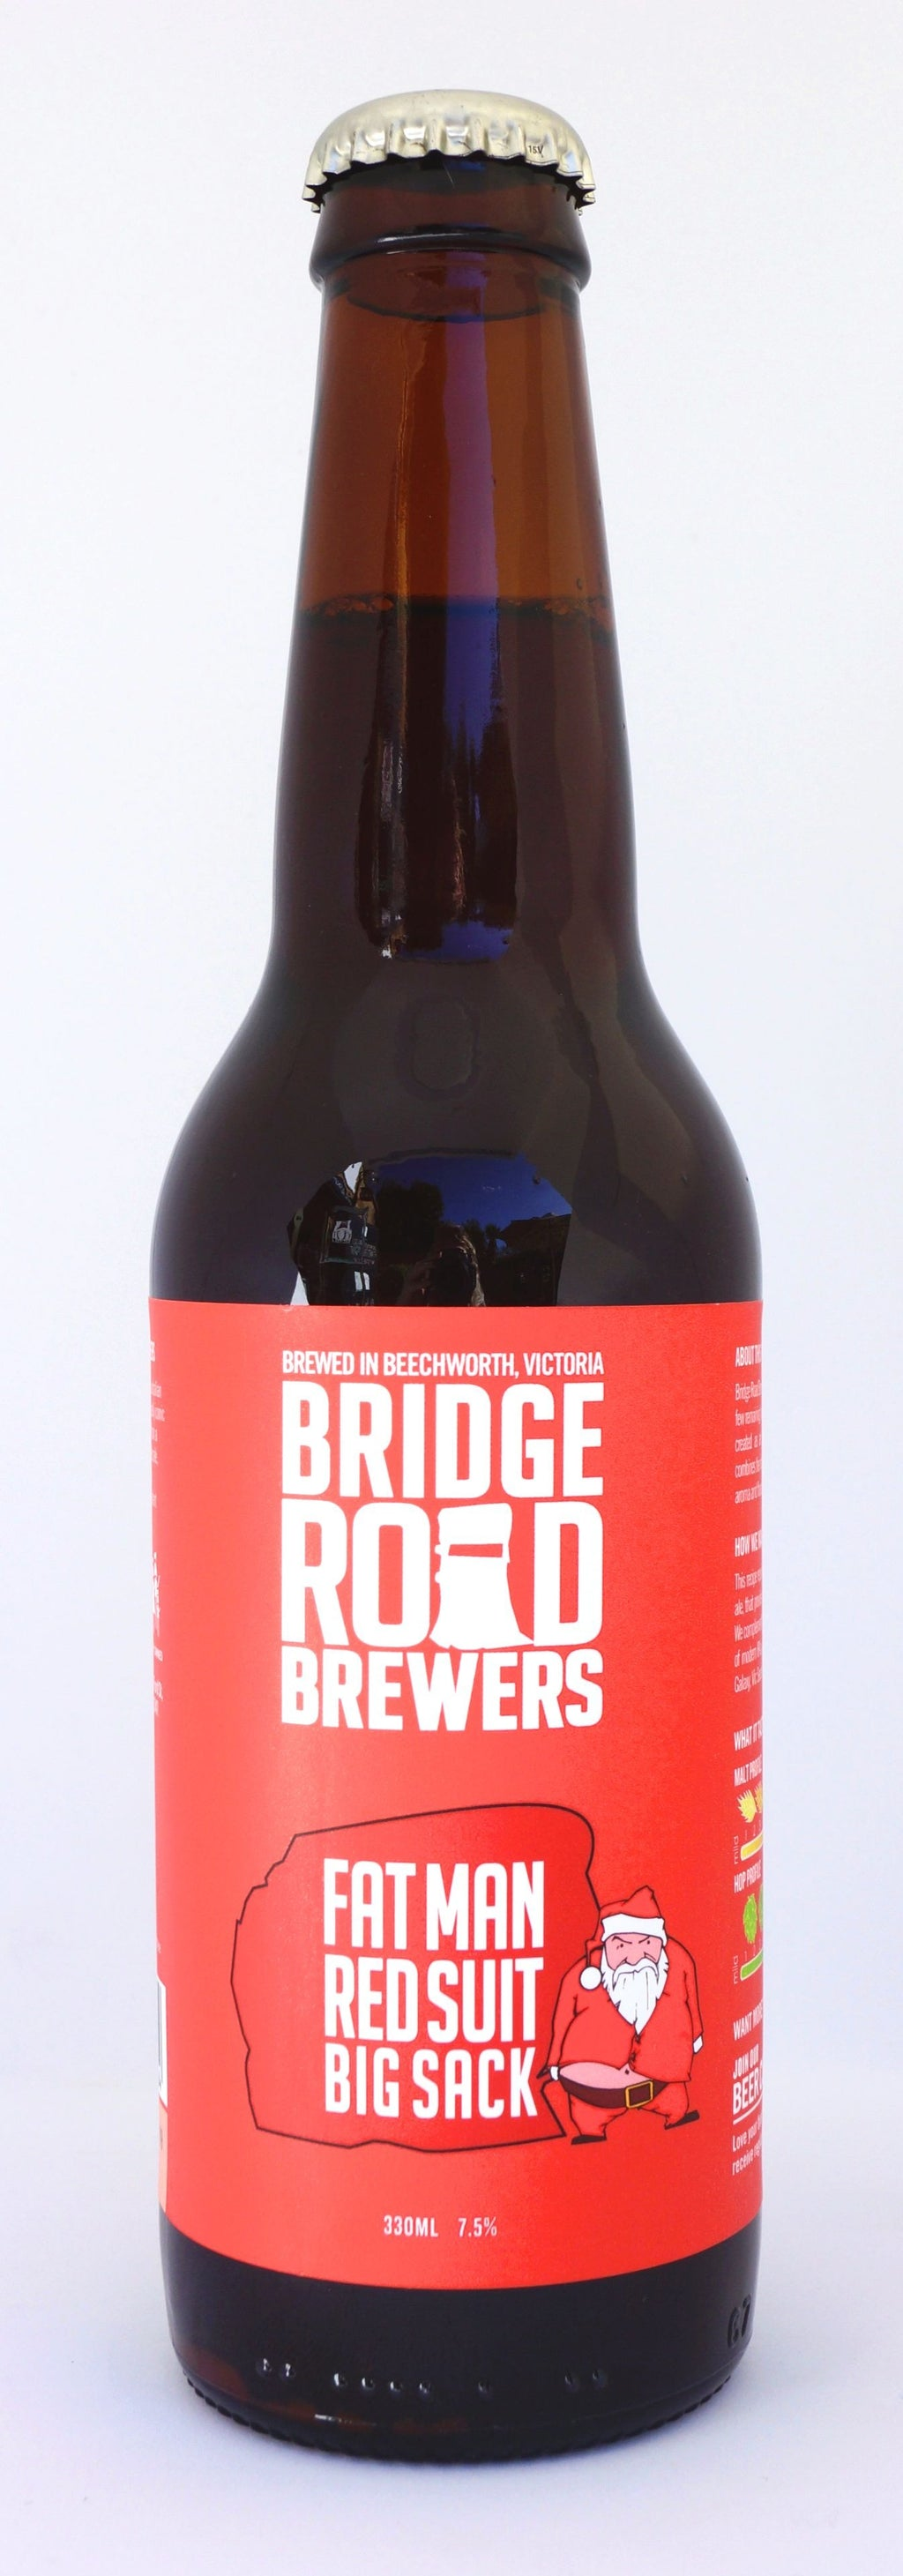 Bridge Road Fat Man Red Suit Big Sack Red IPA